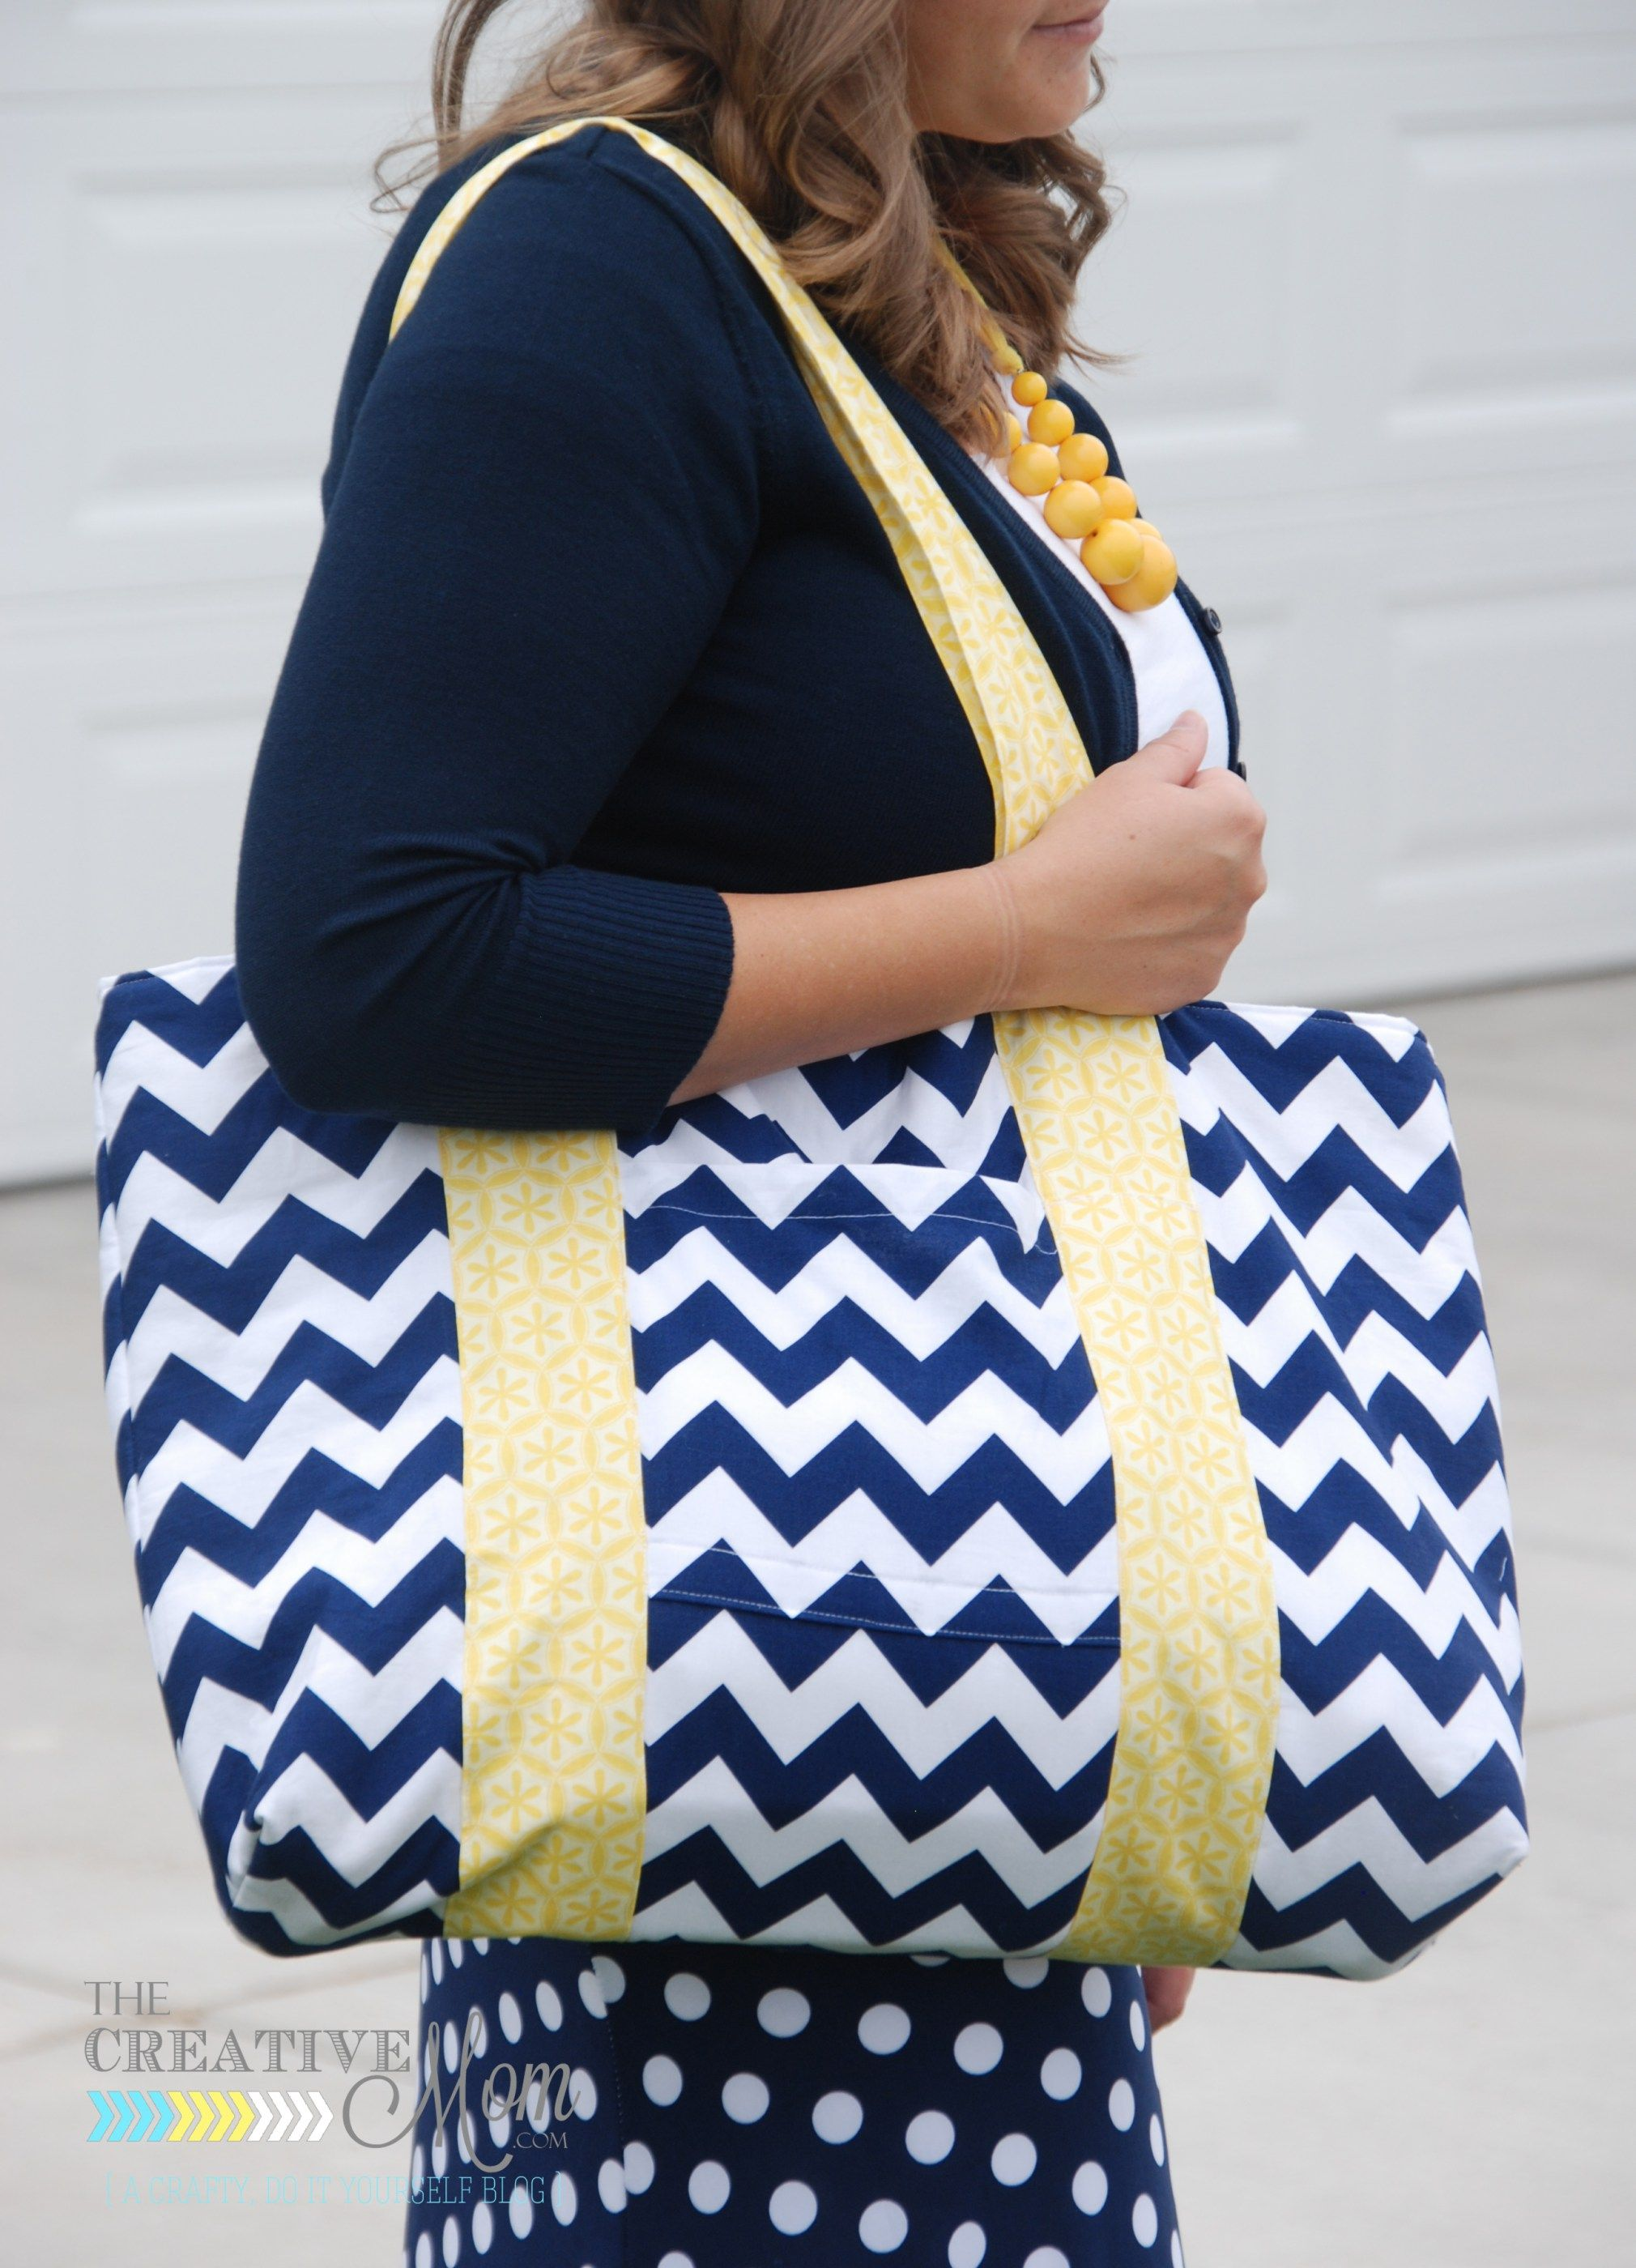 One of my new favorite online shops is The Ribbon Retreat. I was so excited to be able to pick out some fabric to sew a new bag with. They have such amazing designer fabric, and I bet I spent a goo…